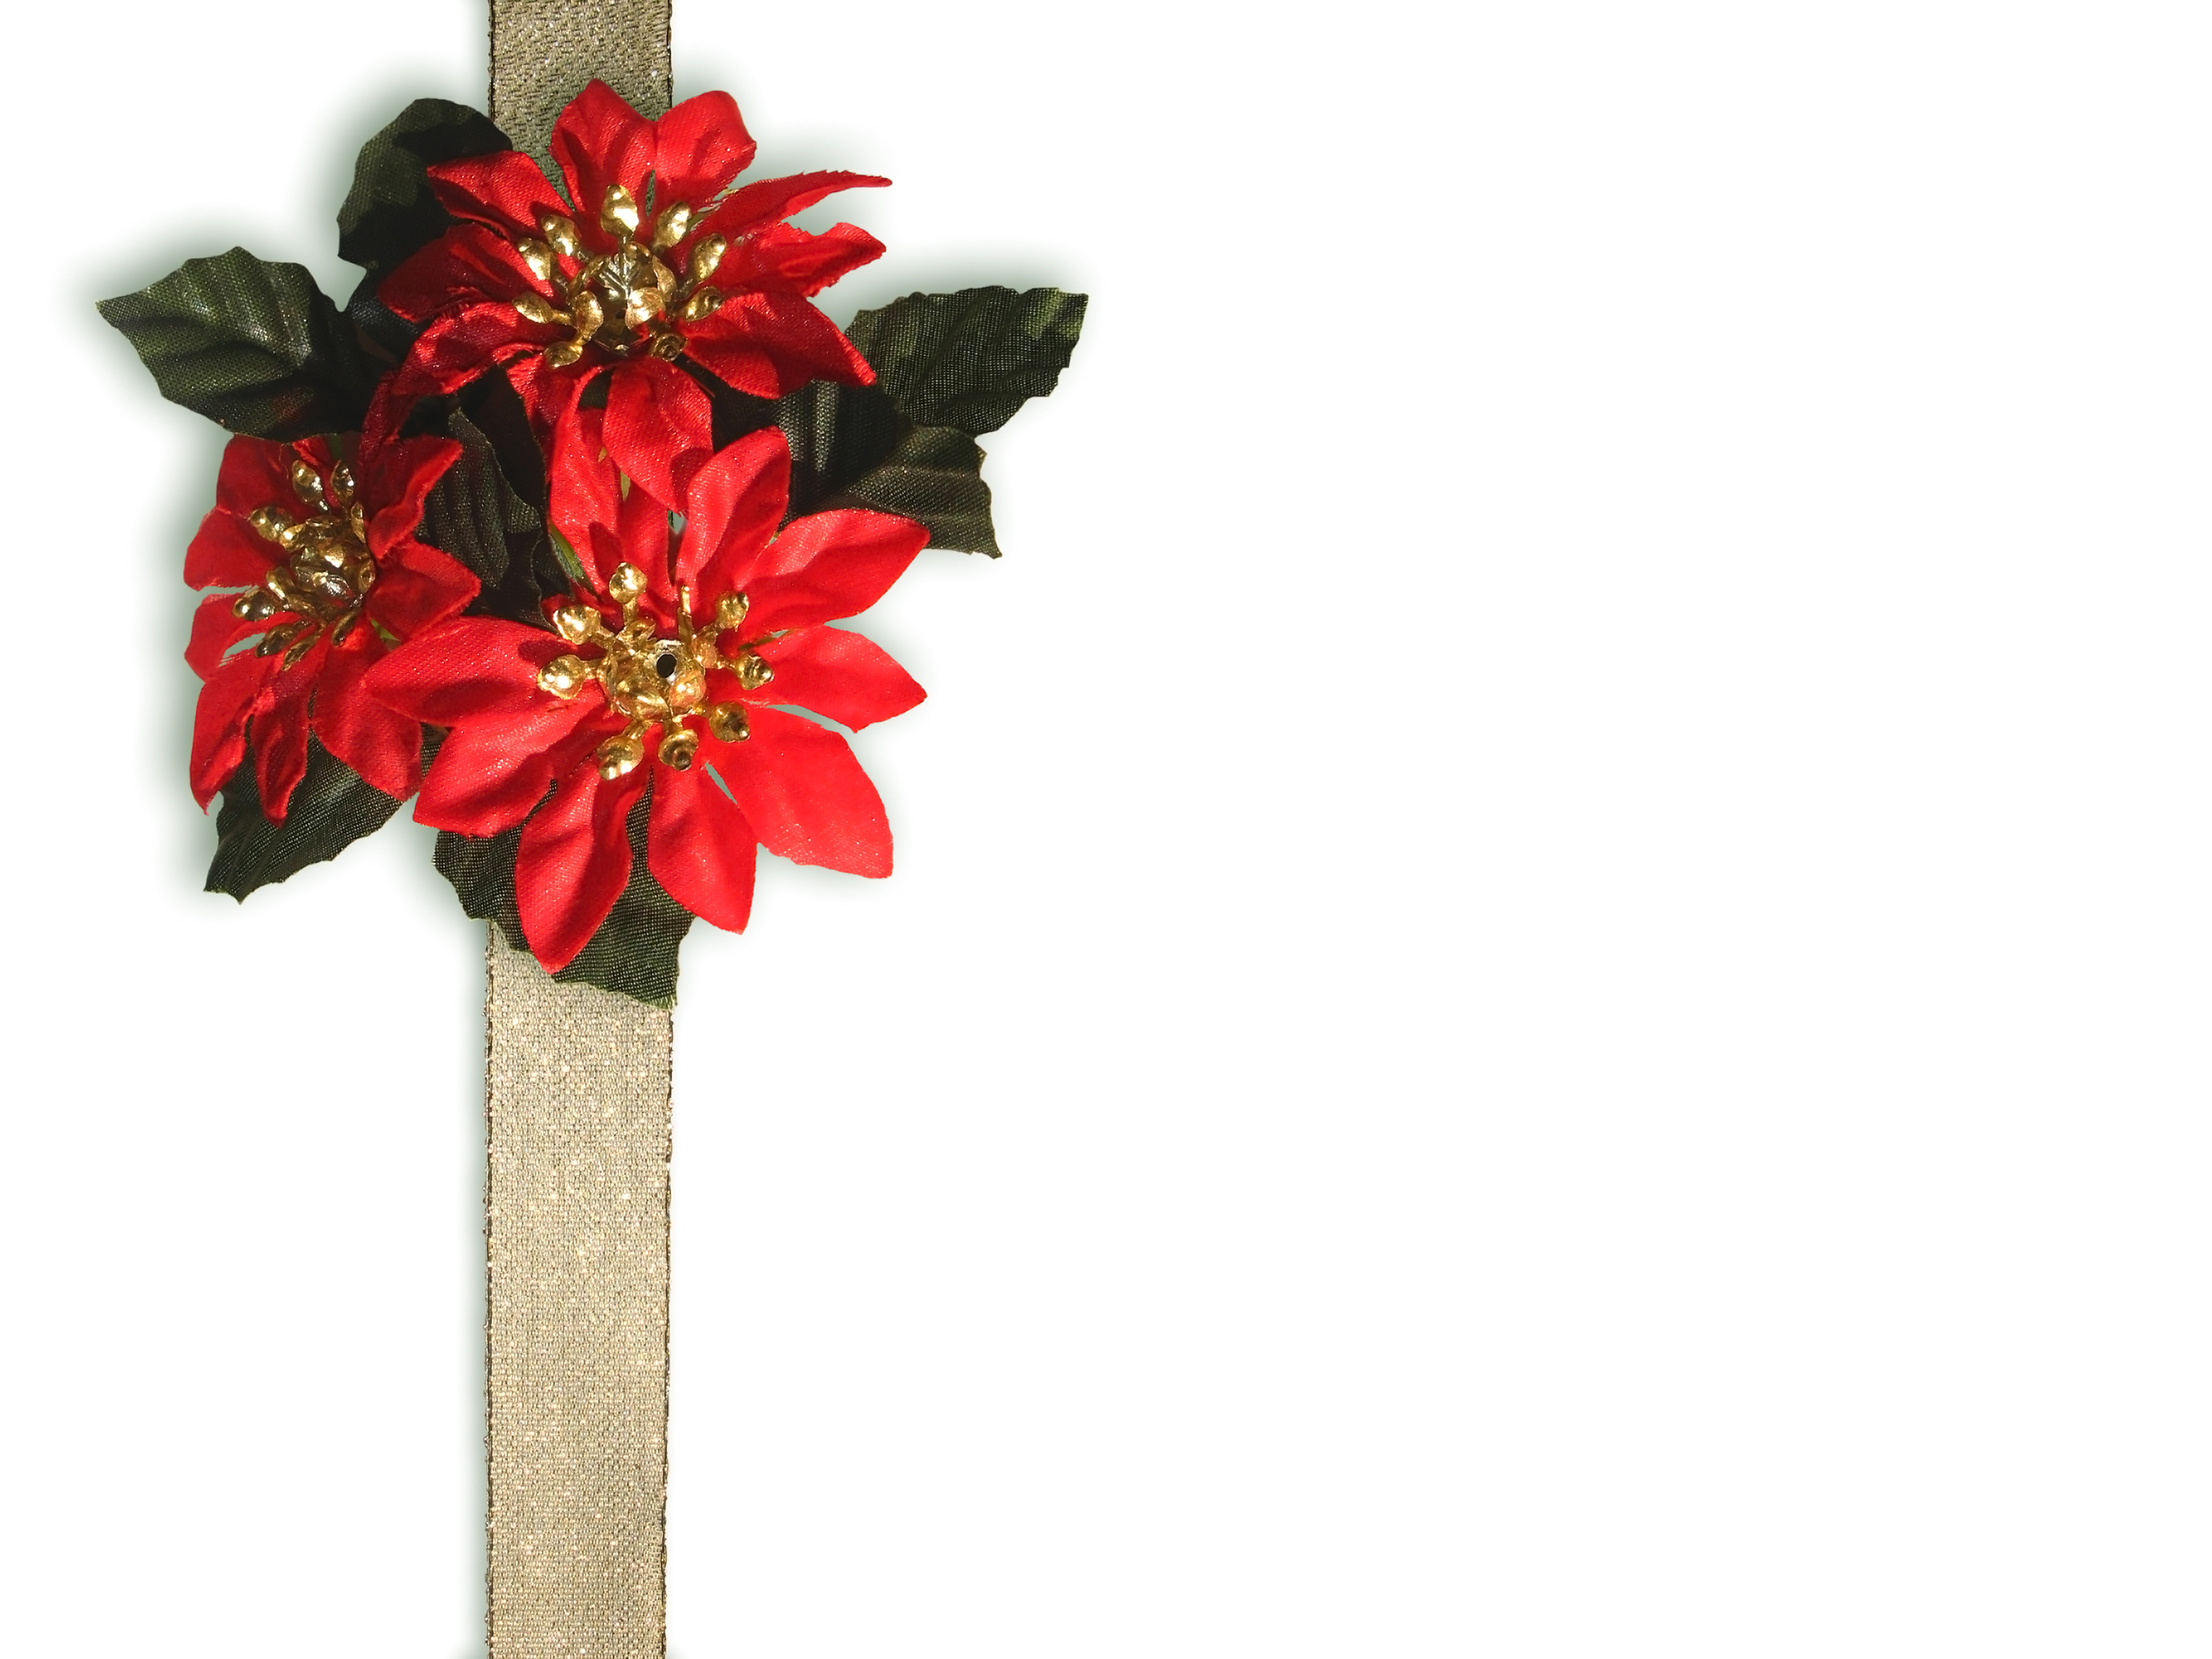 Decorate Christmas gifts with flowers